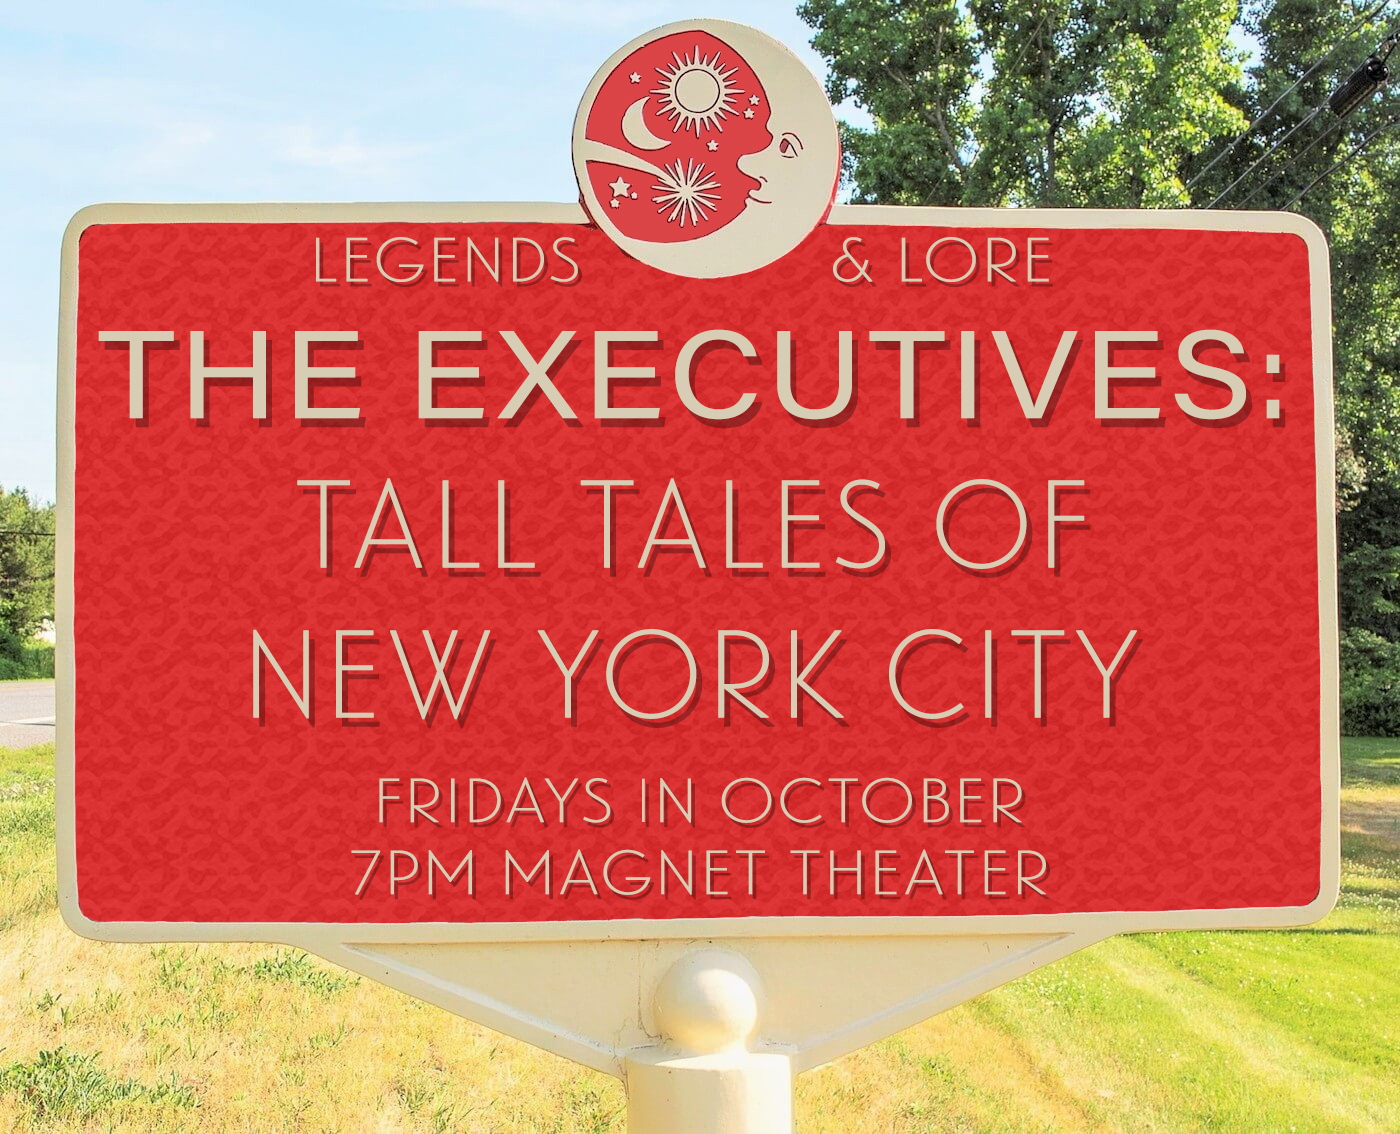 The Executives: Tall Tales of New York City